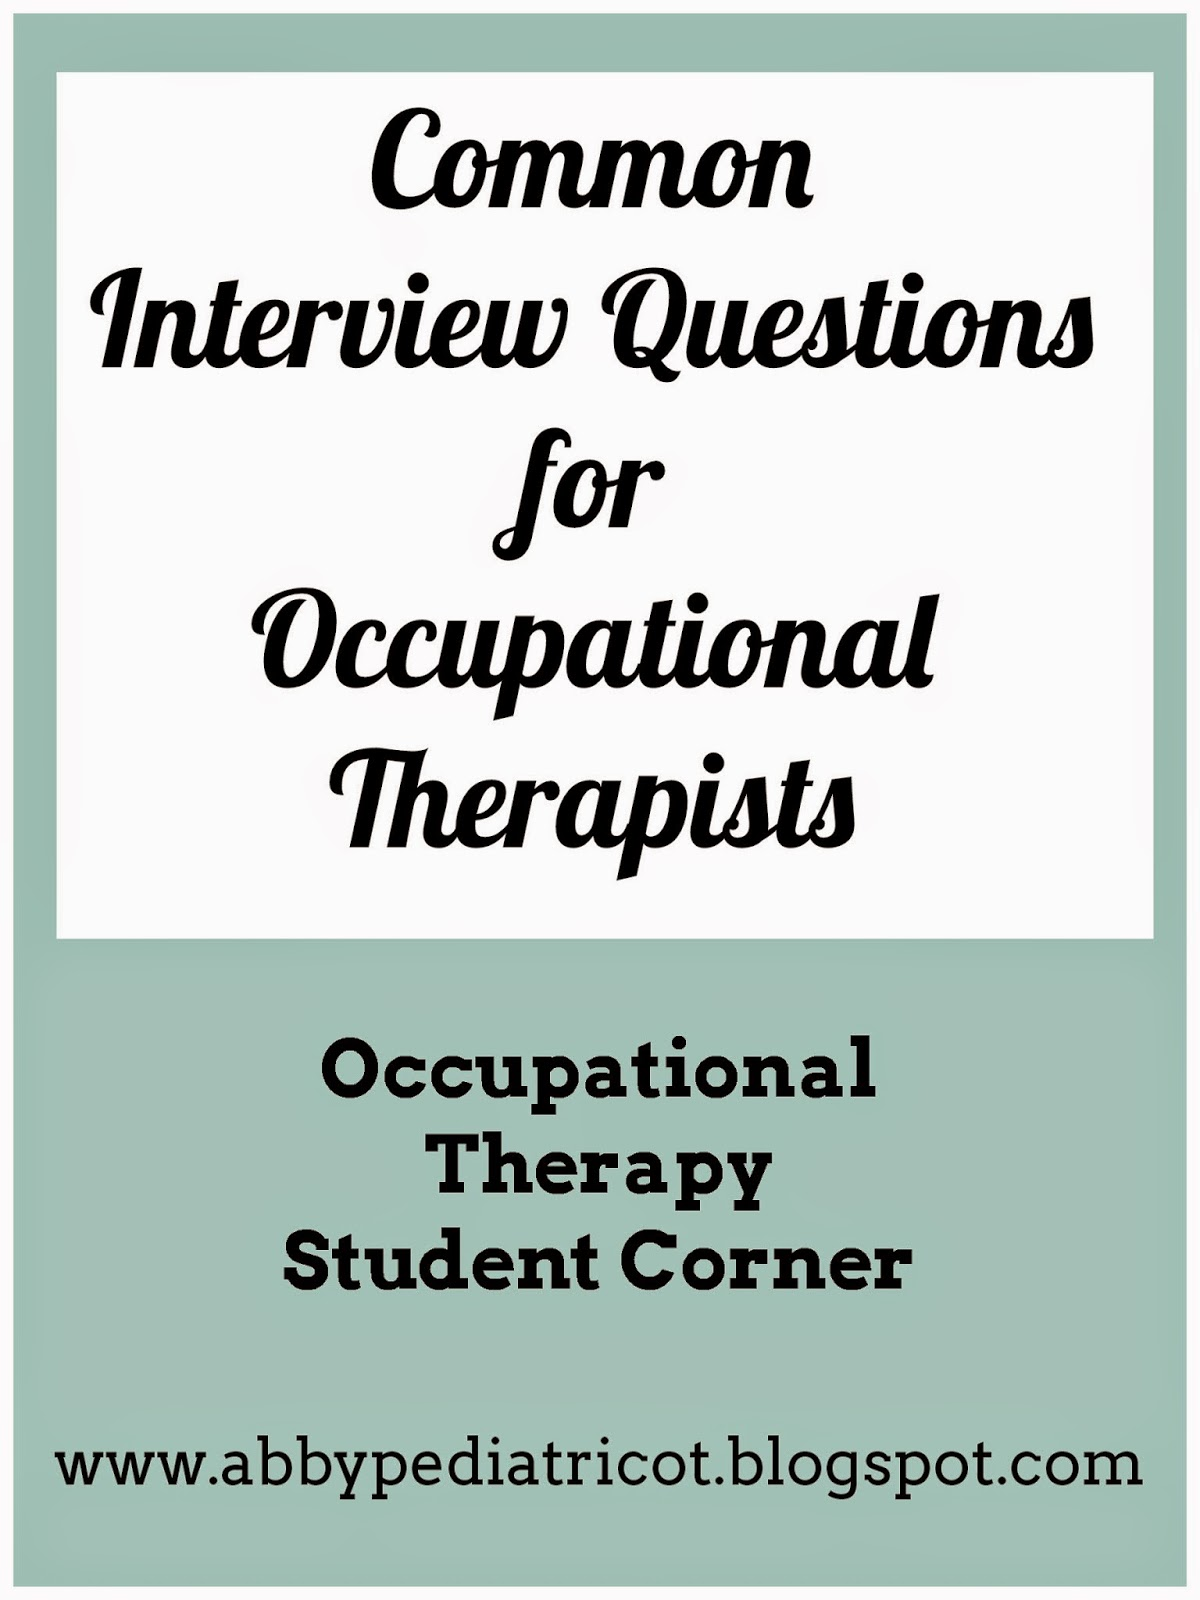 Common interview questions for occupational therapy jobs